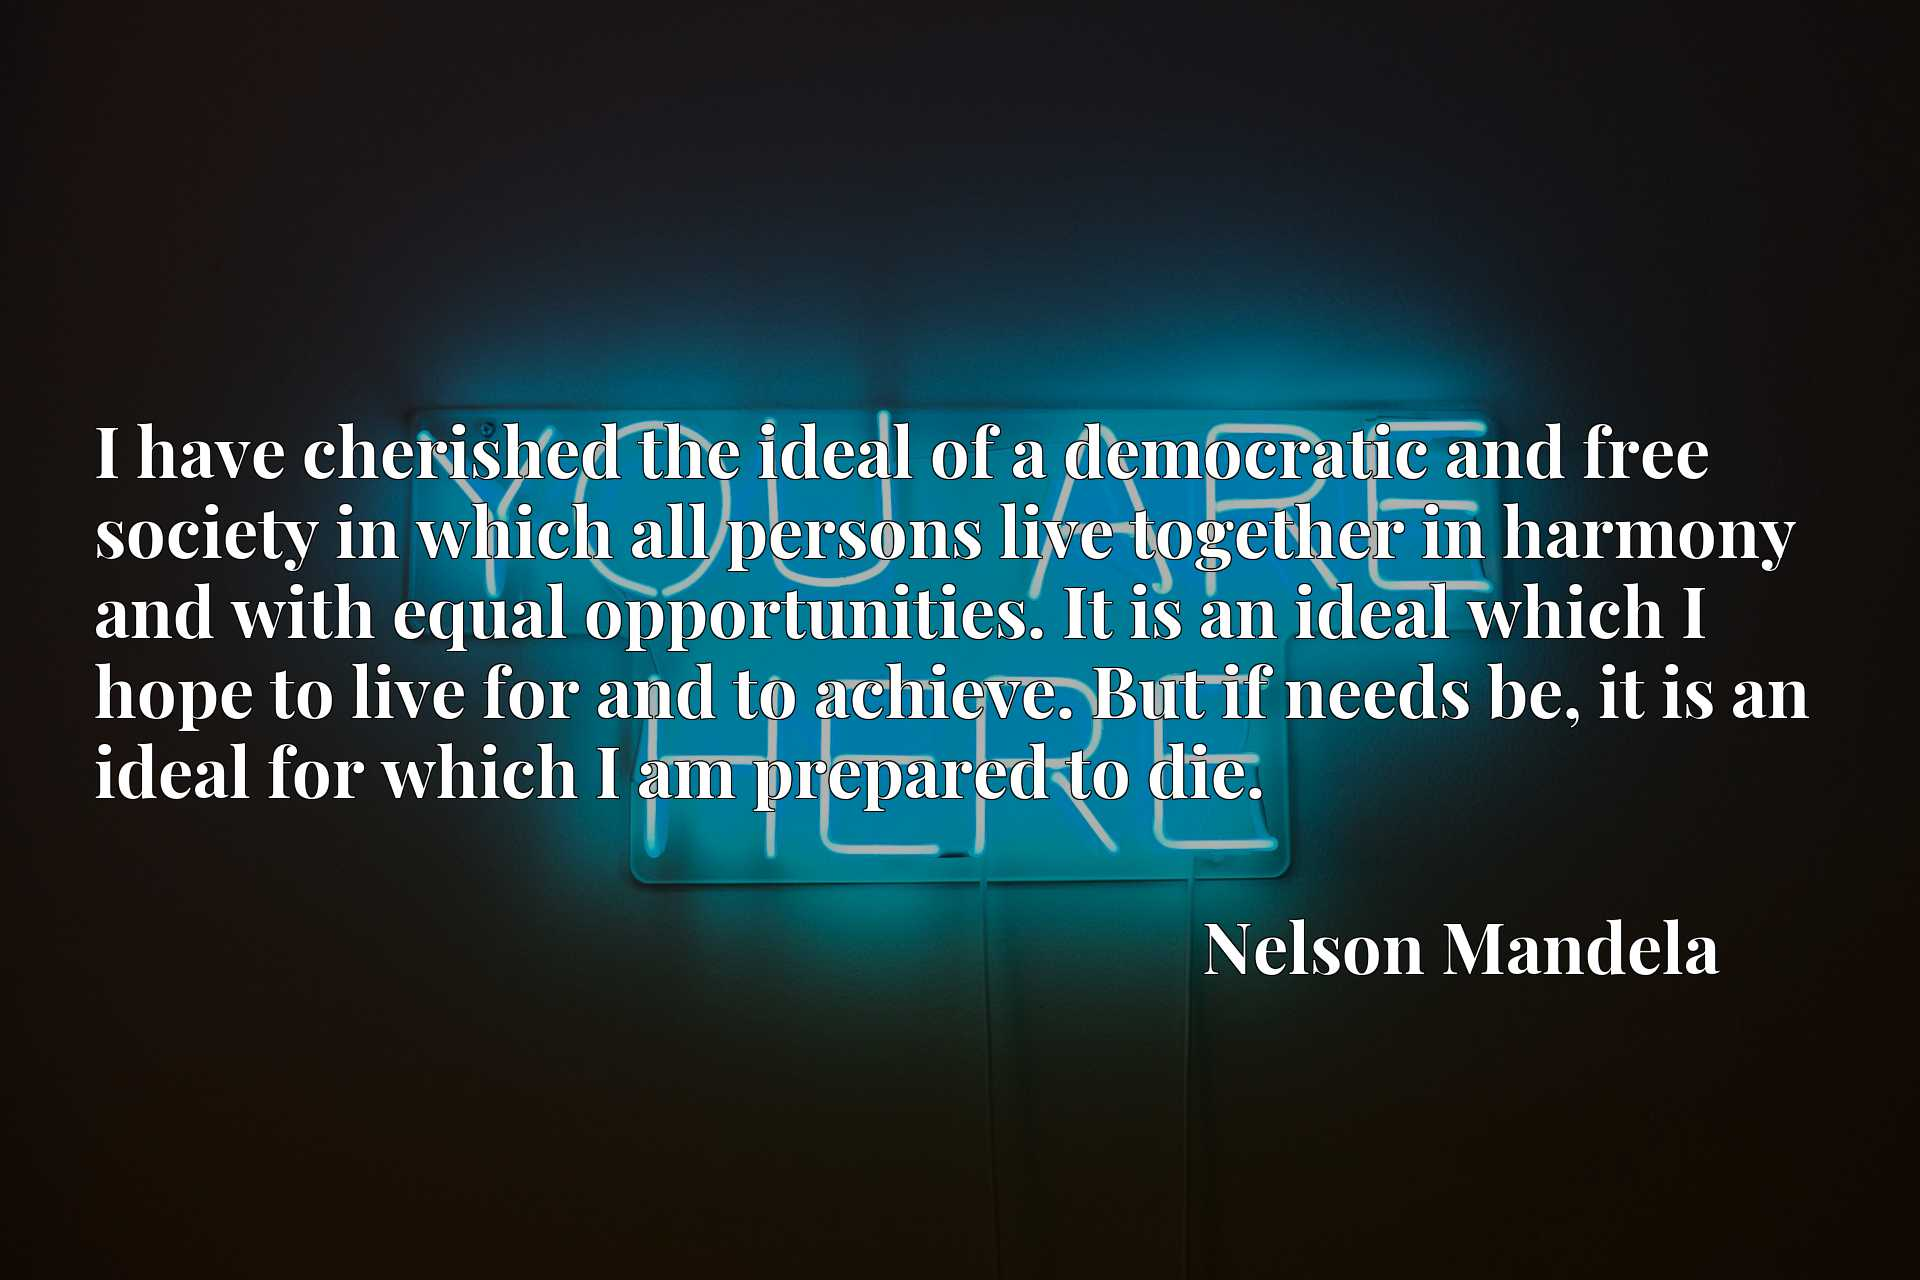 I have cherished the ideal of a democratic and free society in which all persons live together in harmony and with equal opportunities. It is an ideal which I hope to live for and to achieve. But if needs be, it is an ideal for which I am prepared to die.